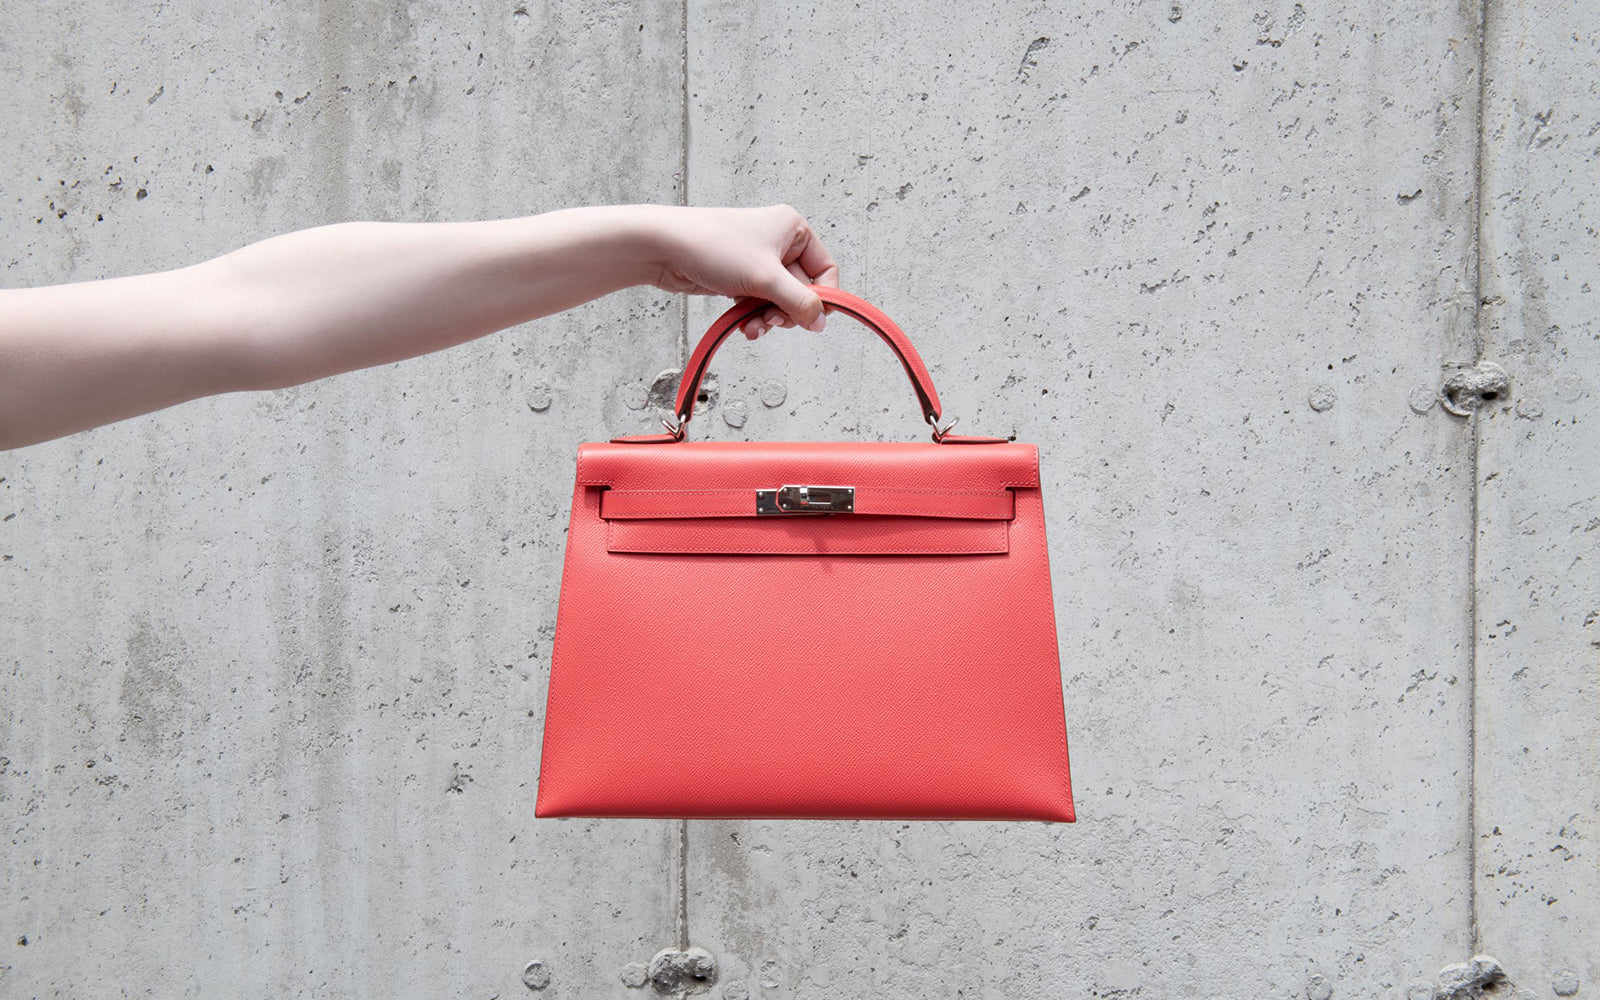 Shop authentic preloved Hermes handbags and accessories